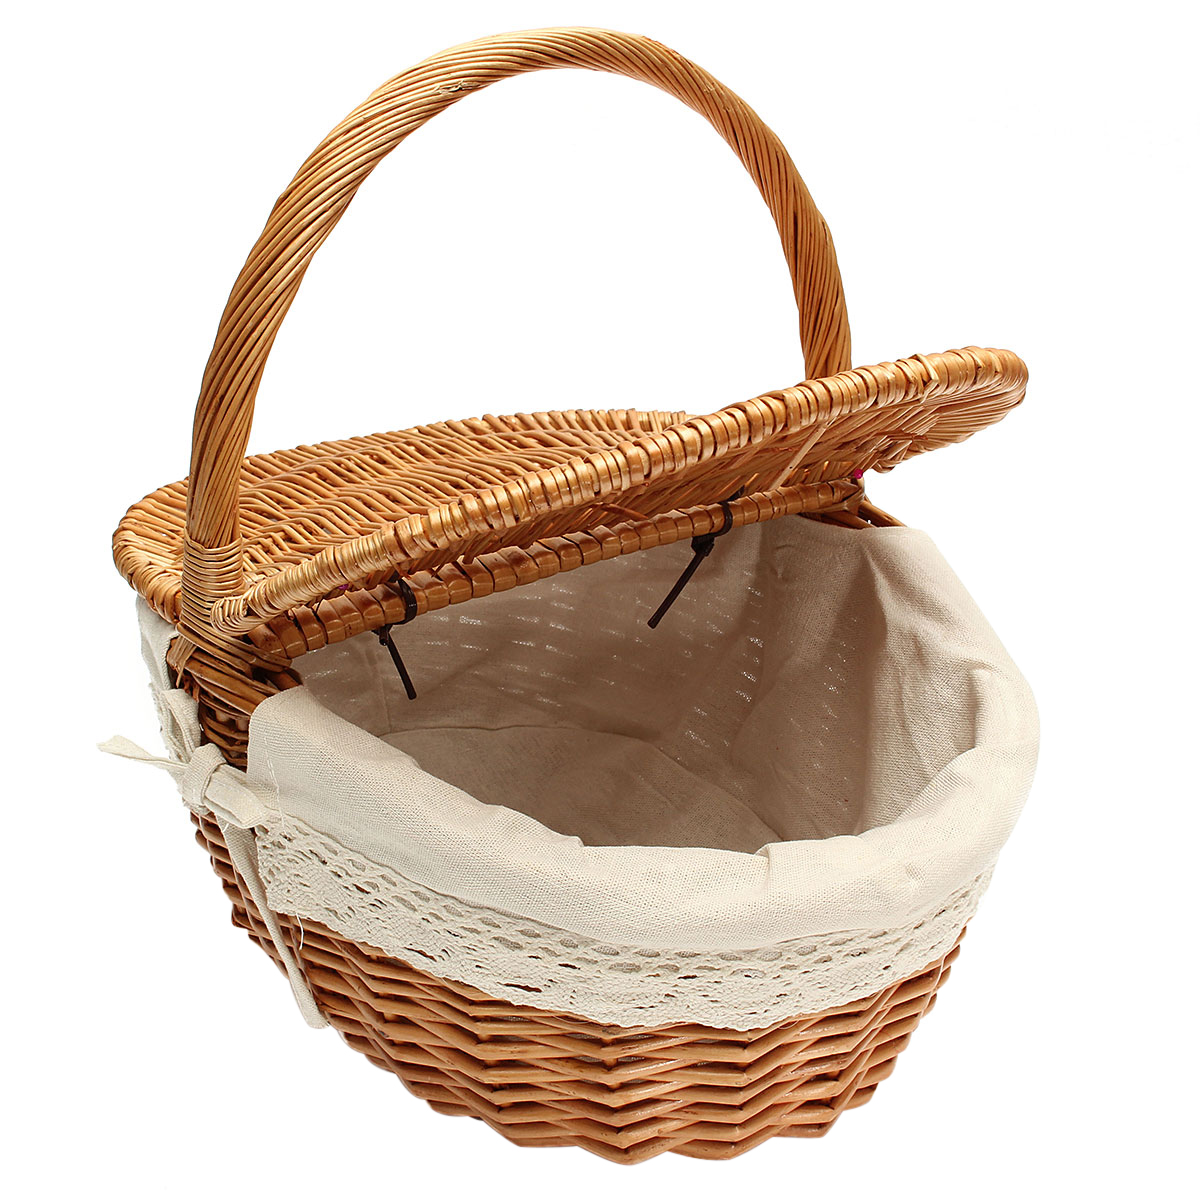 Picnic Basket Hamper White-Liner Carrying-Food Outdoor Wicker Willow With Lid And Handle